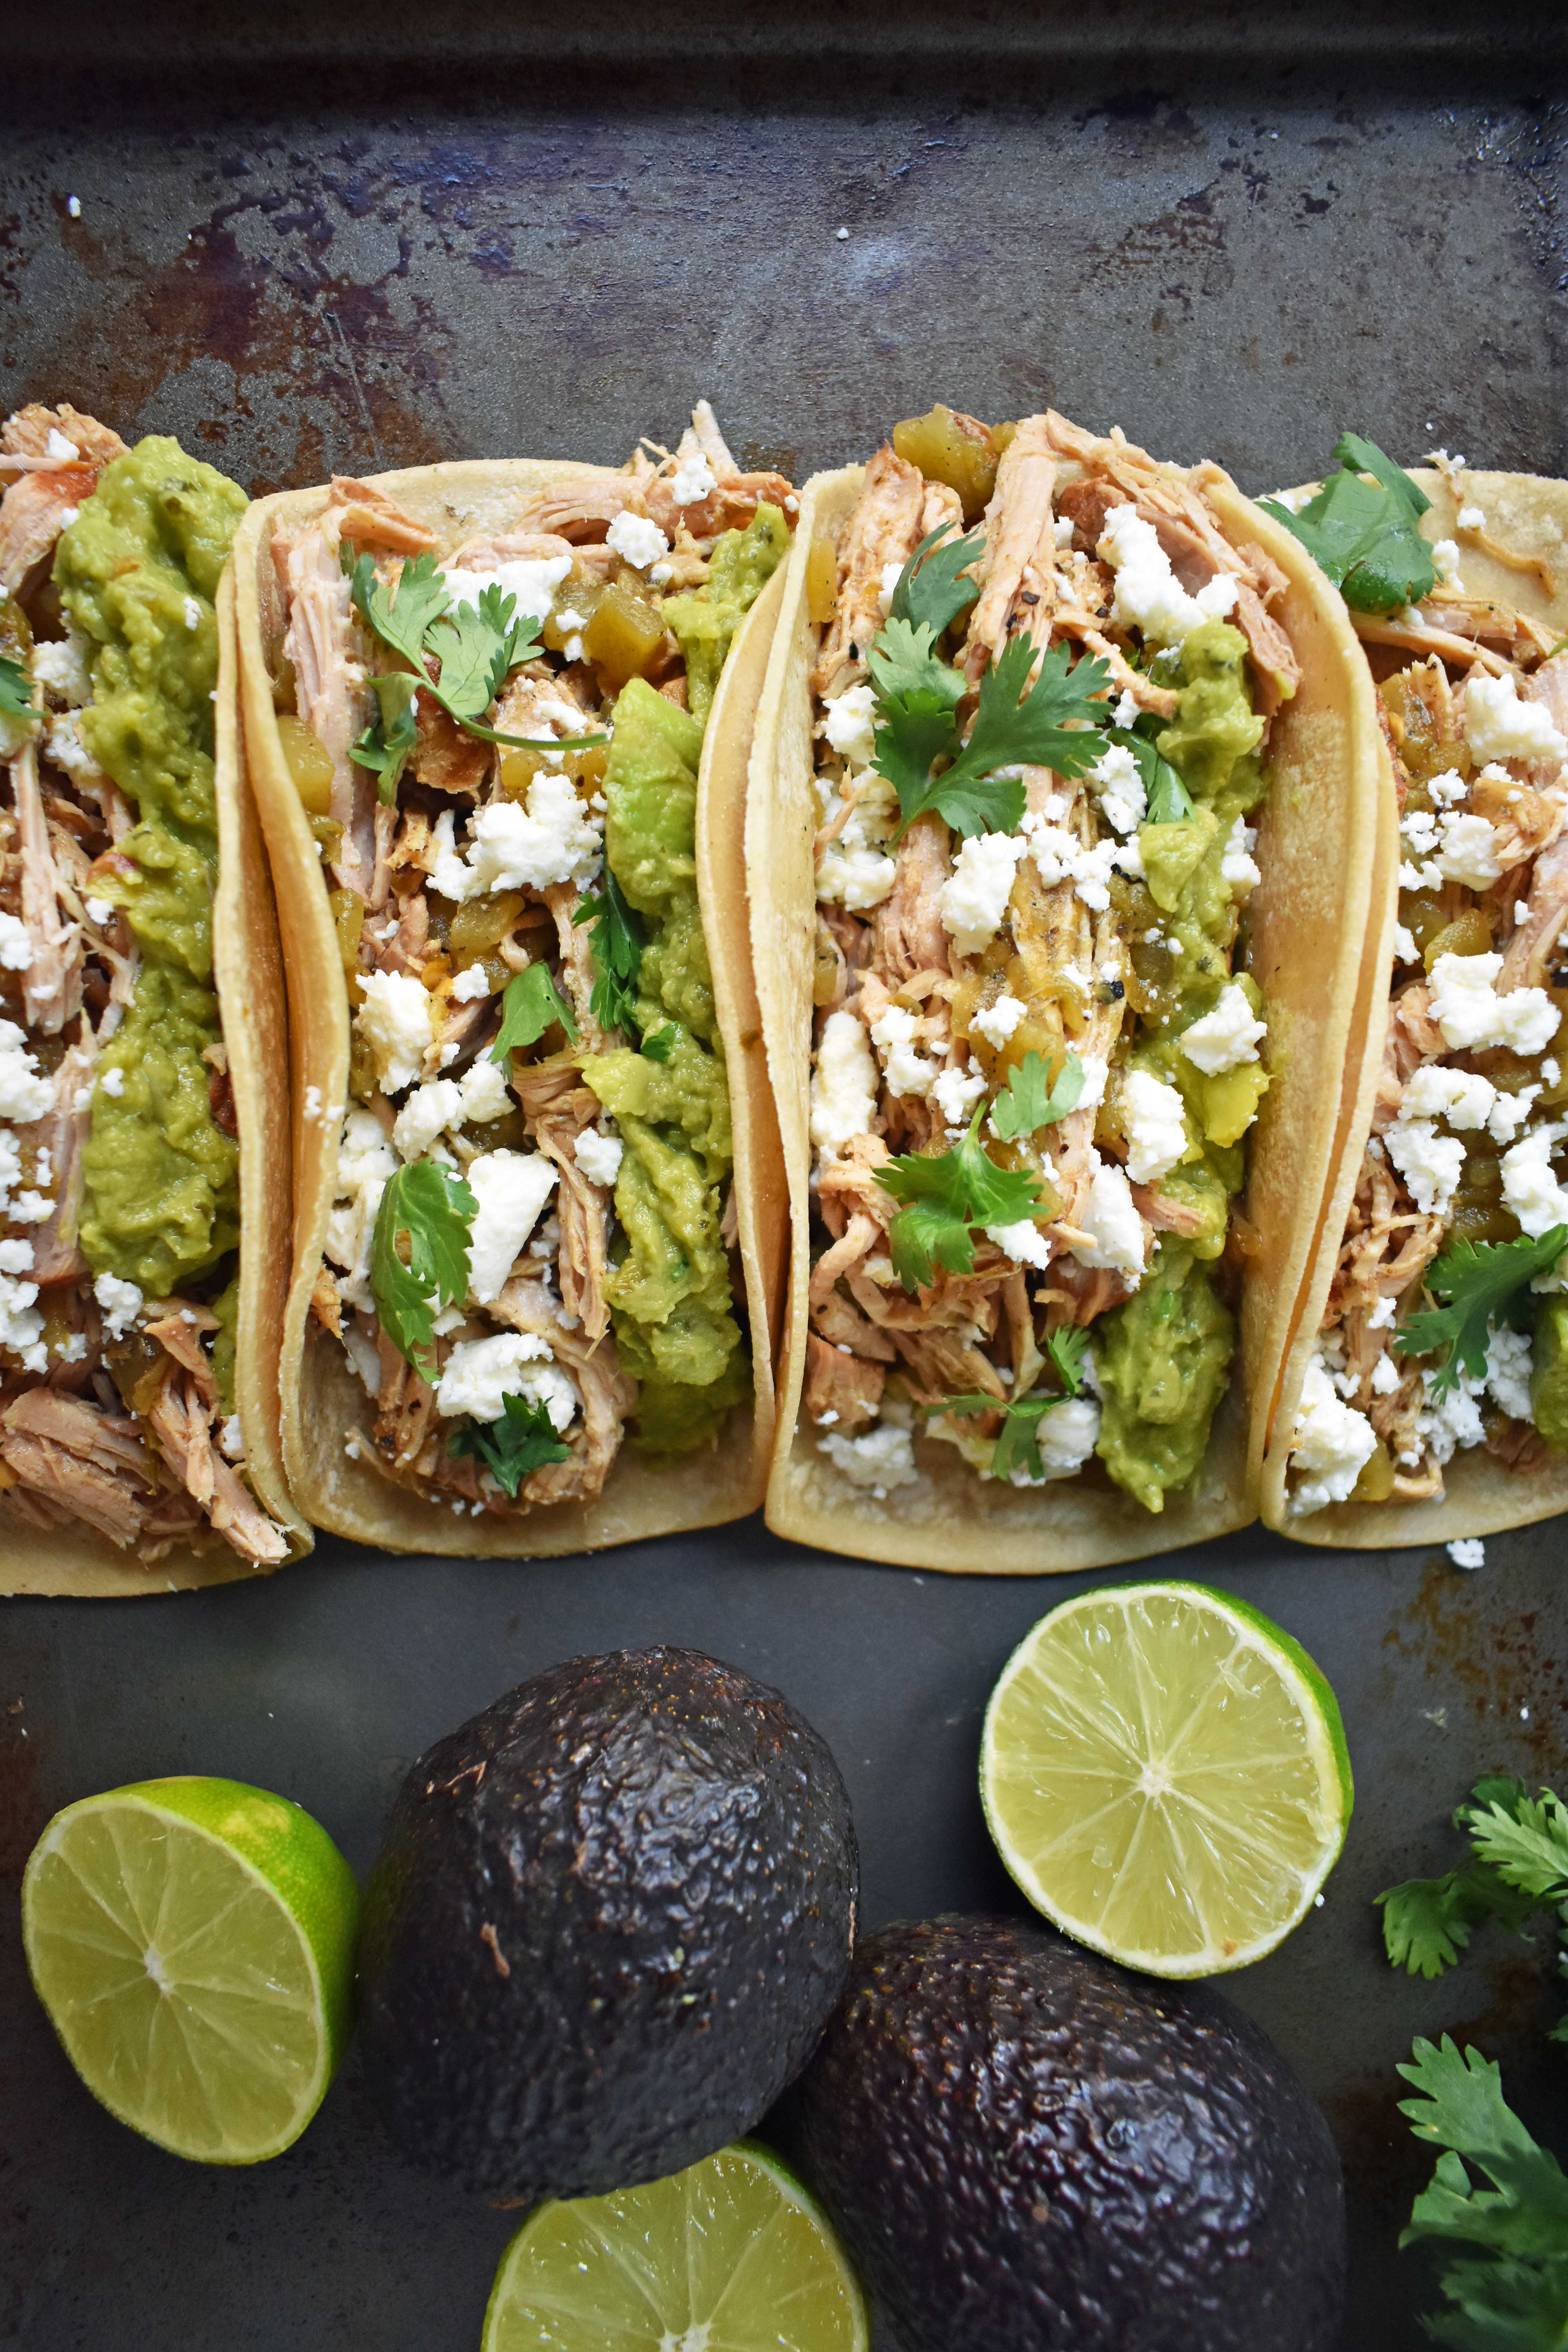 Green Chili Pork Carnitas Tacos. Slow cooked green chili pork seasoned with Mexican spices and freshly squeezed lime juice placed in a hot corn tortilla and topped with cotija cheese, jalapenos, avocado and cilantro. www.modernhoney.com